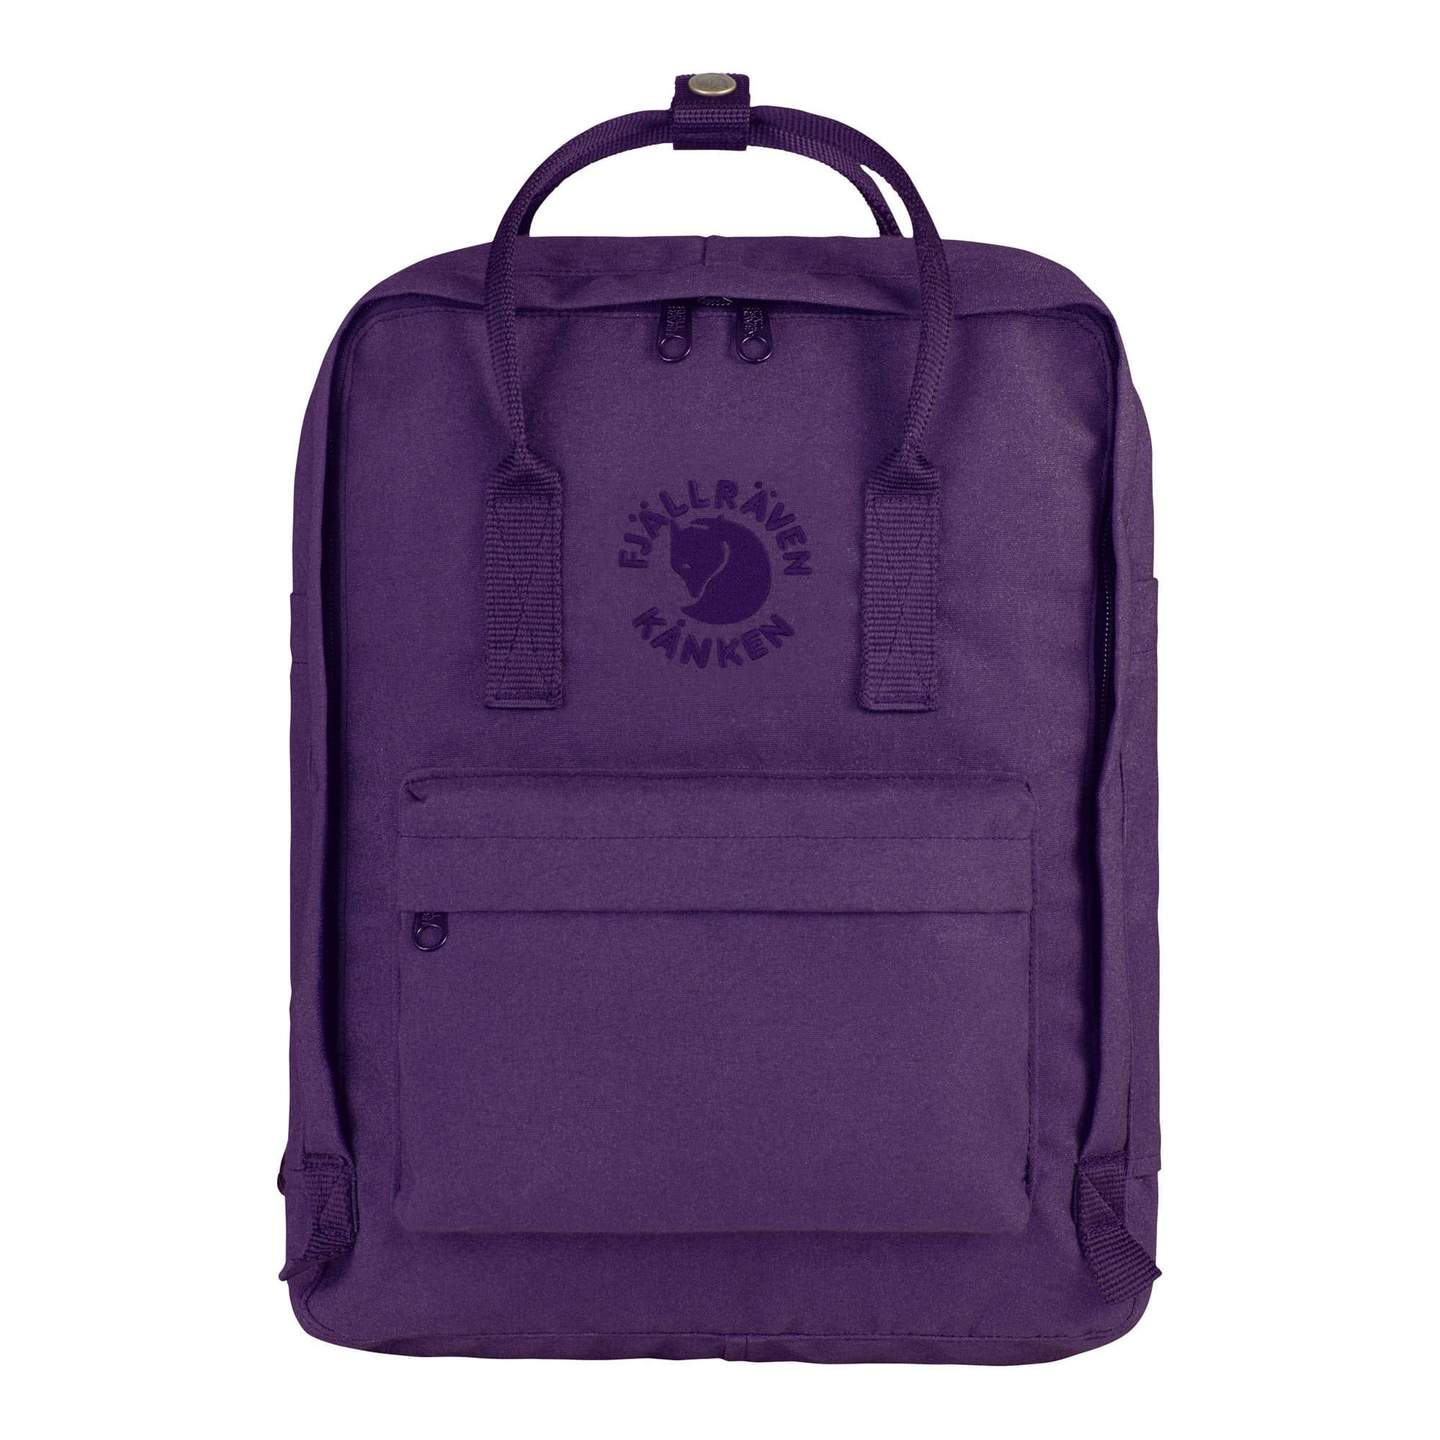 Fjallraven Re-Kanken Backpack - Deep Violet - Find Your Feet Australia Hobart Launceston Tasmania